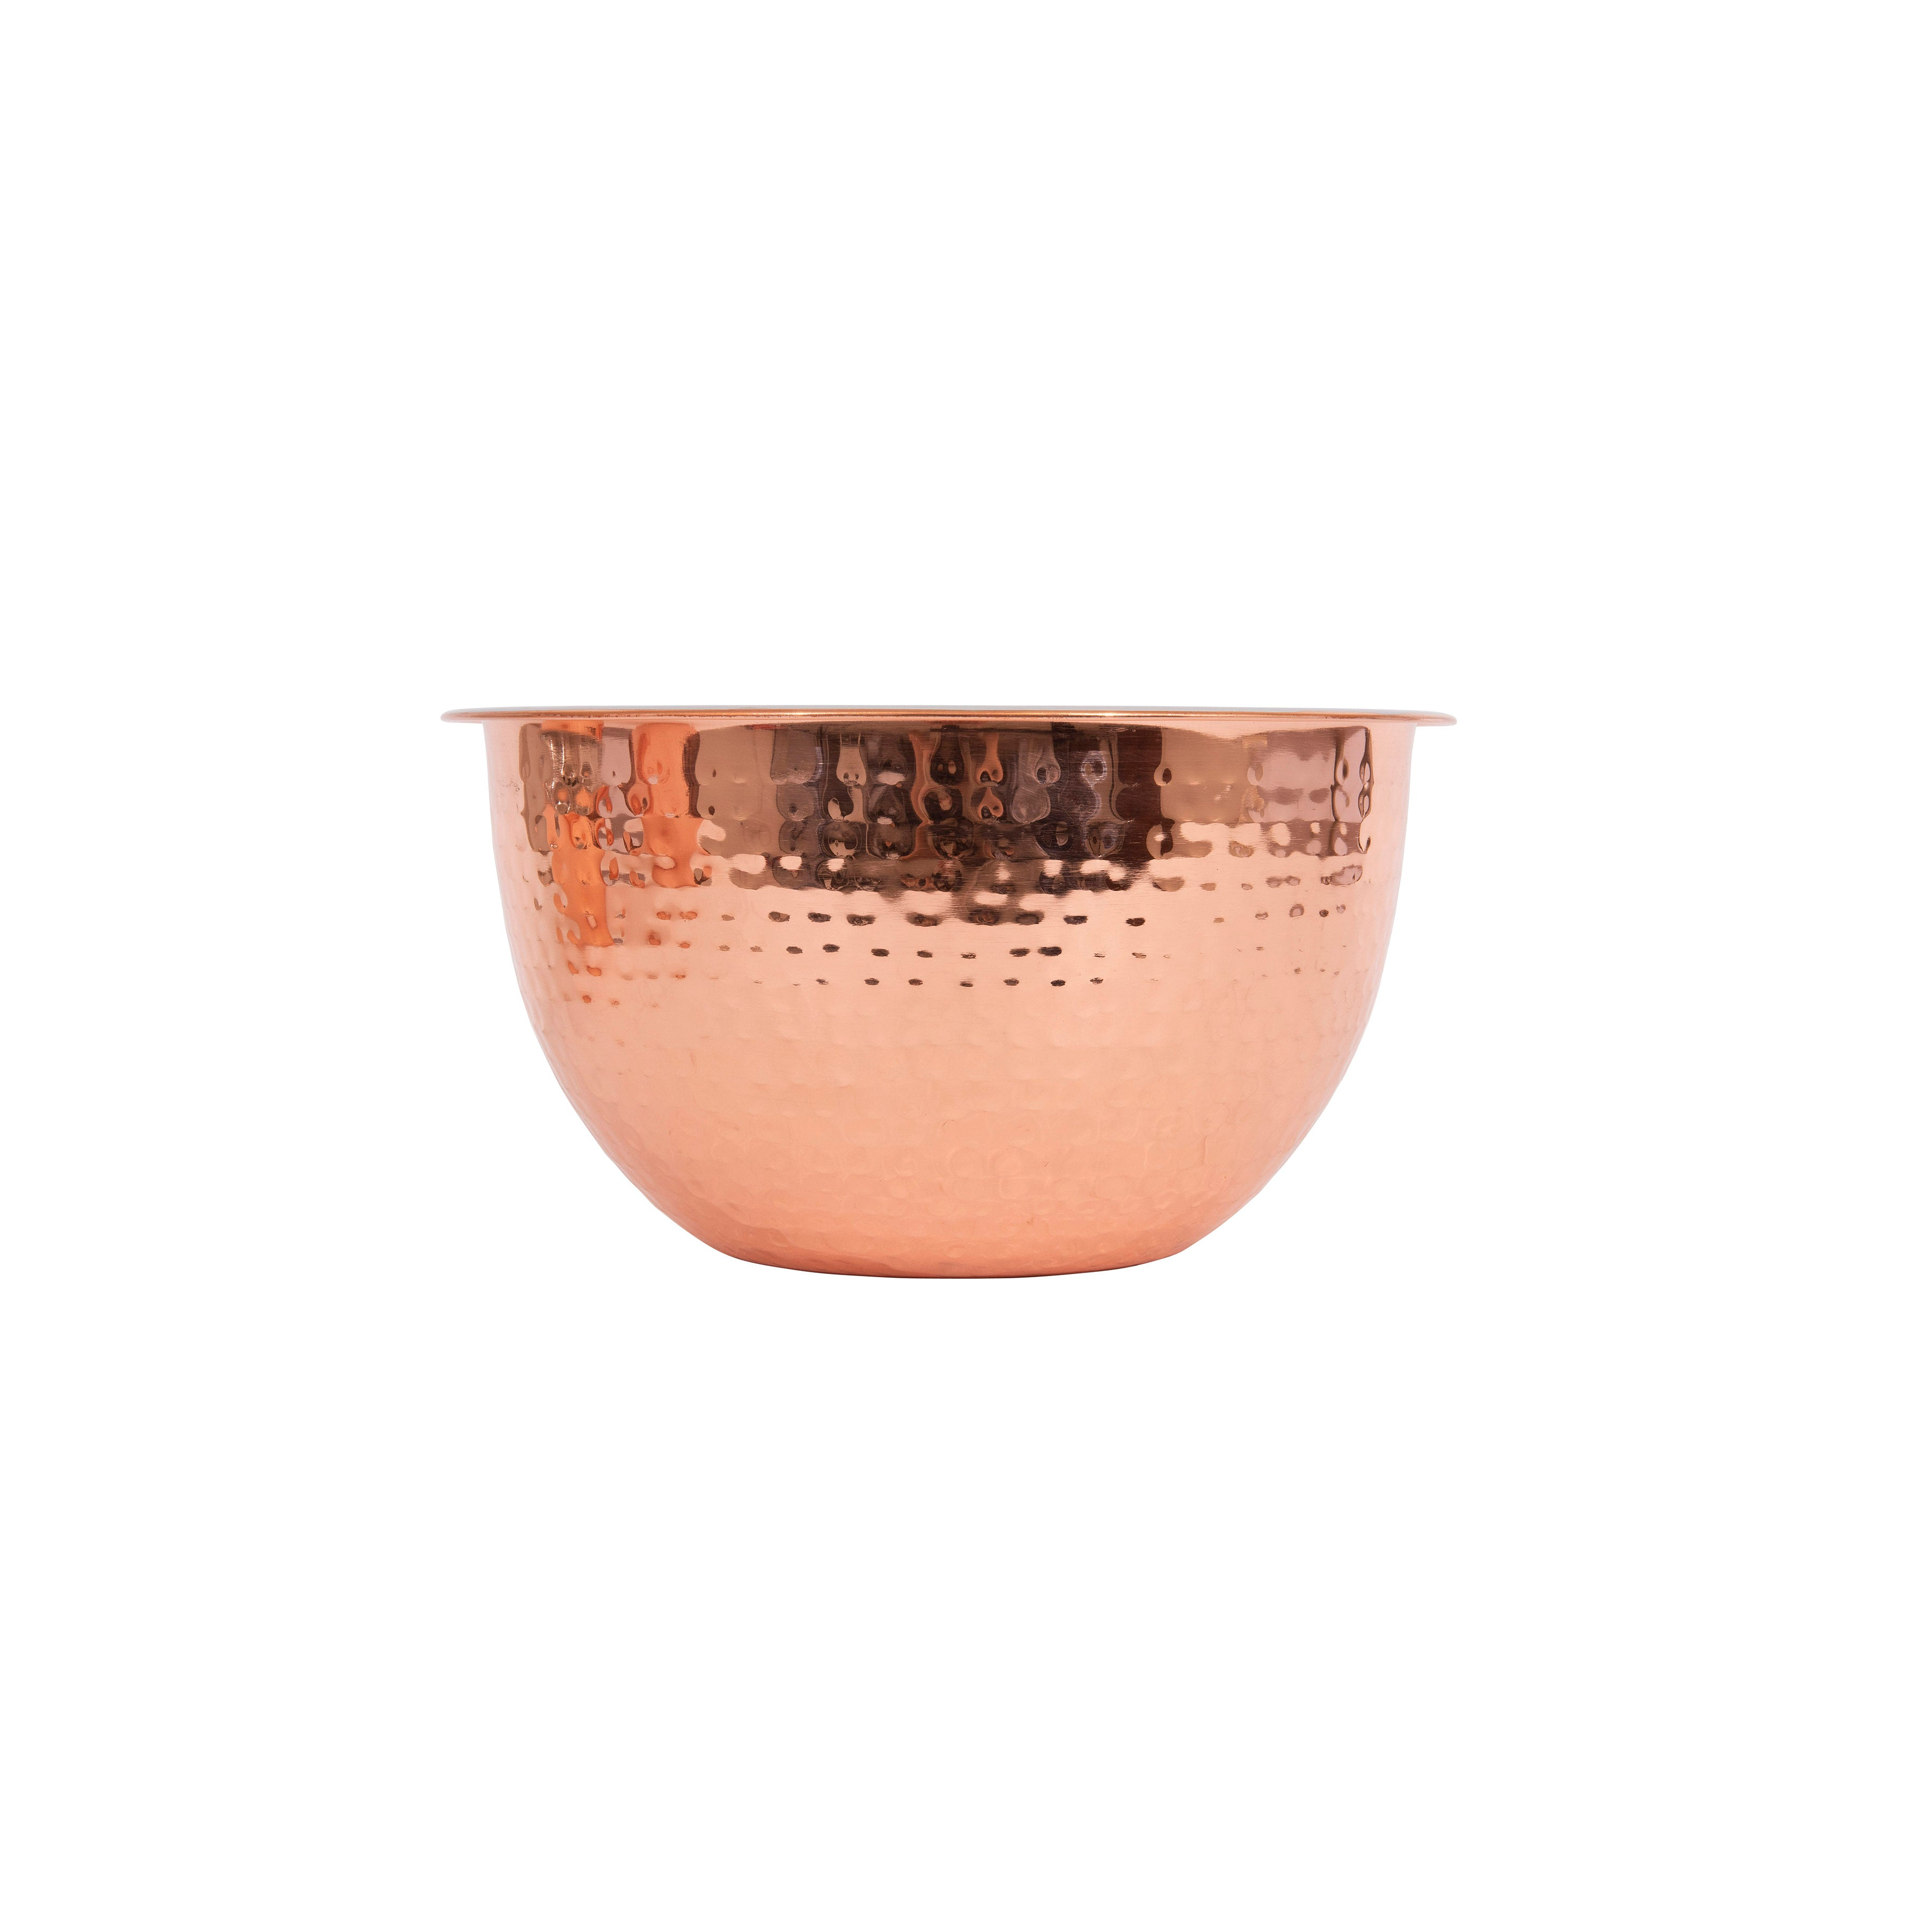 Hammered Copper Stainless Steel Bowl Set [Set of 3]